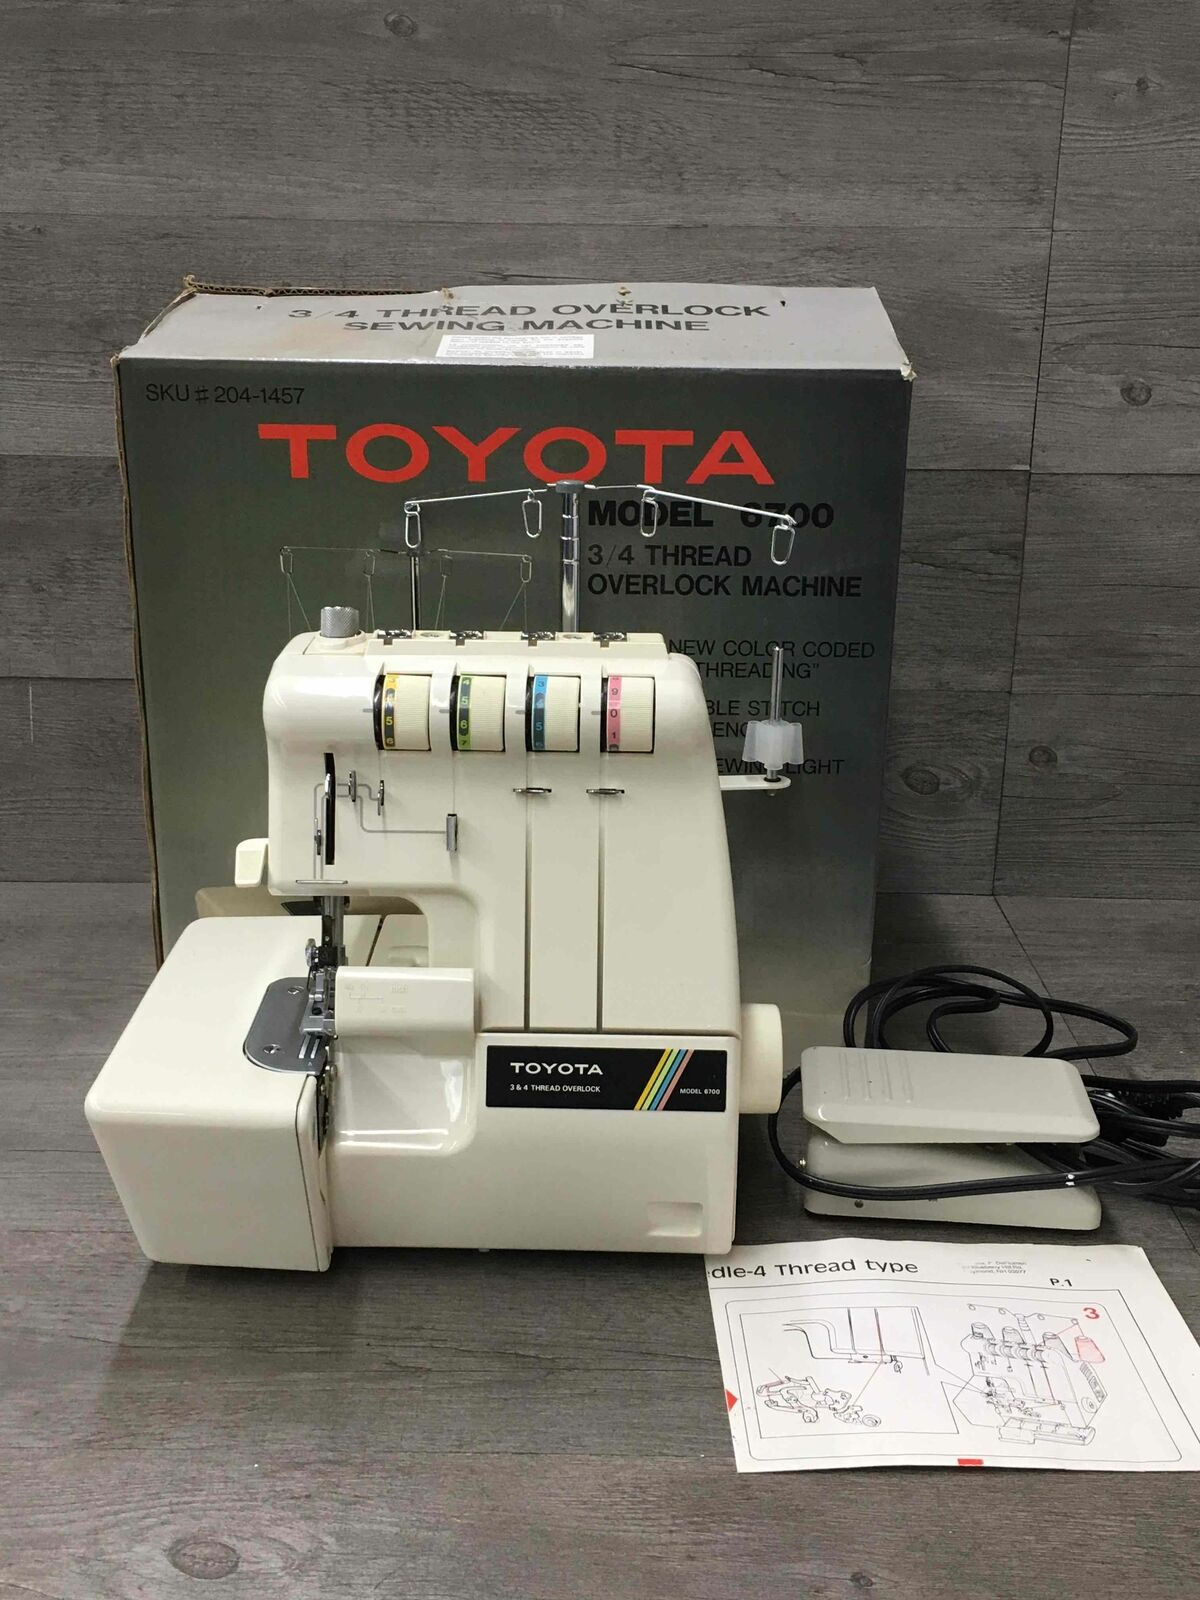 s l1600 - Toyota 6700 3/4 Serger Sewing Machine With Box